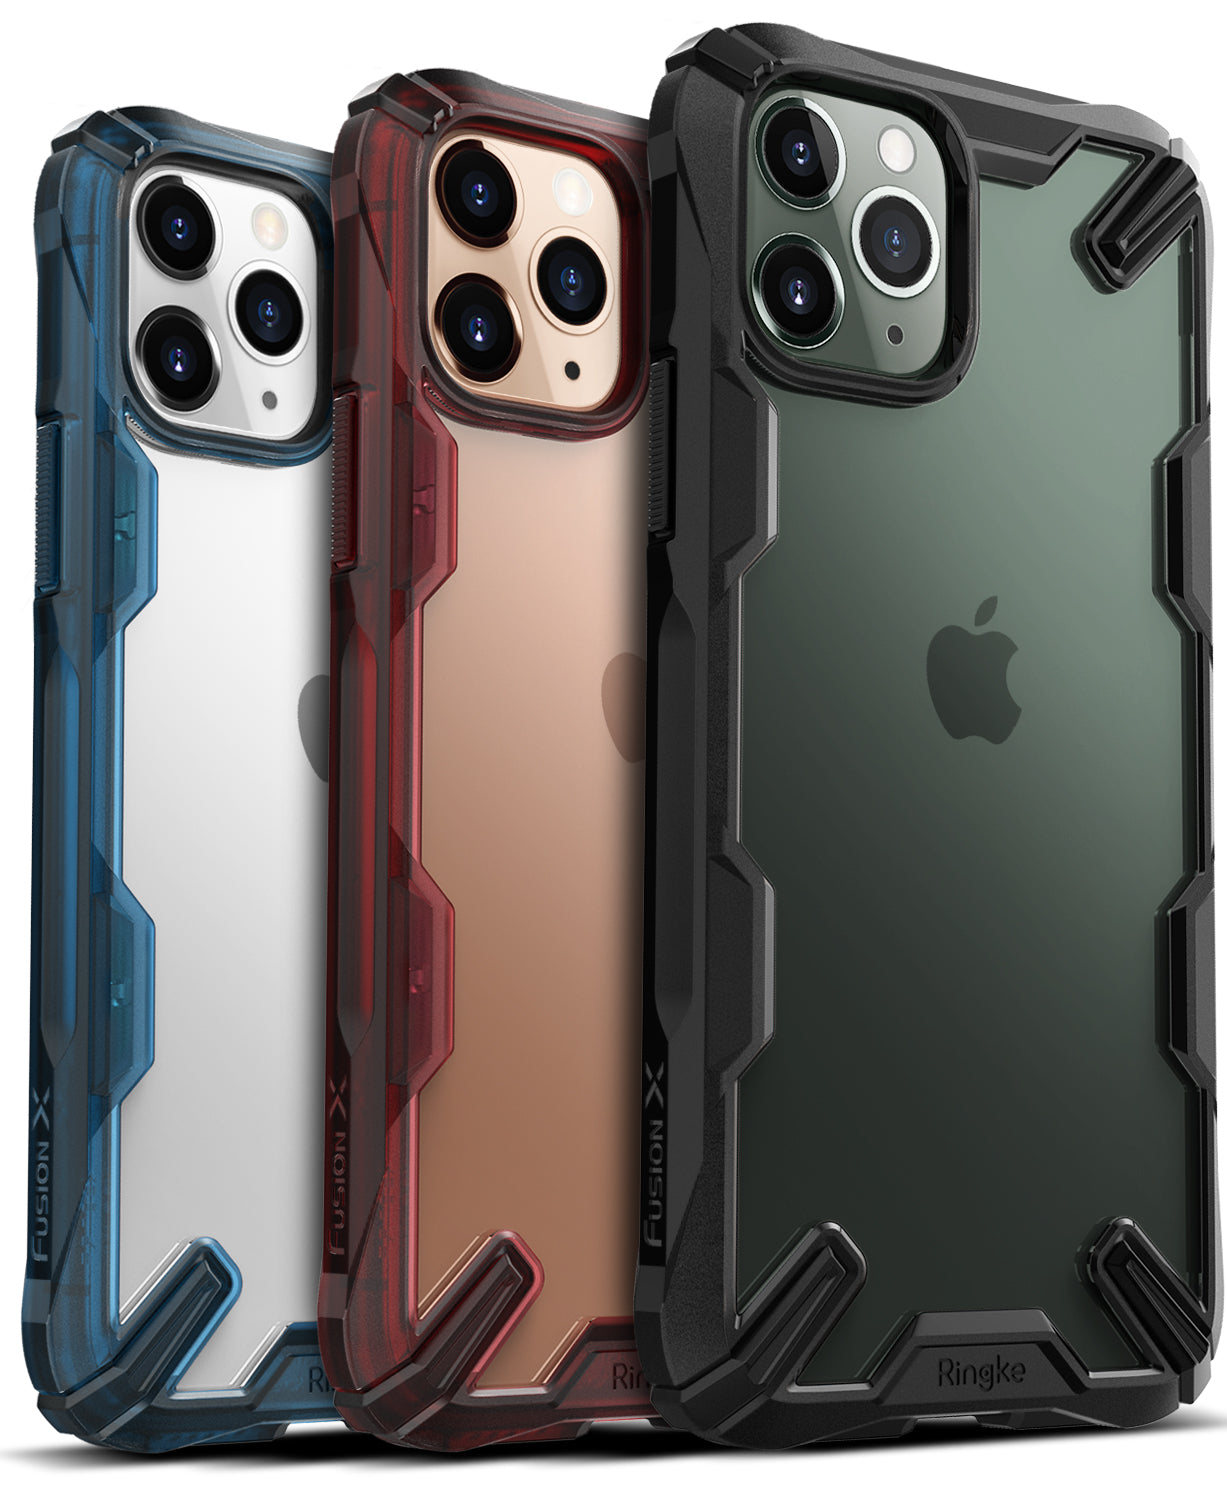 ringke fusion-x case designed for apple iphone 11 pro